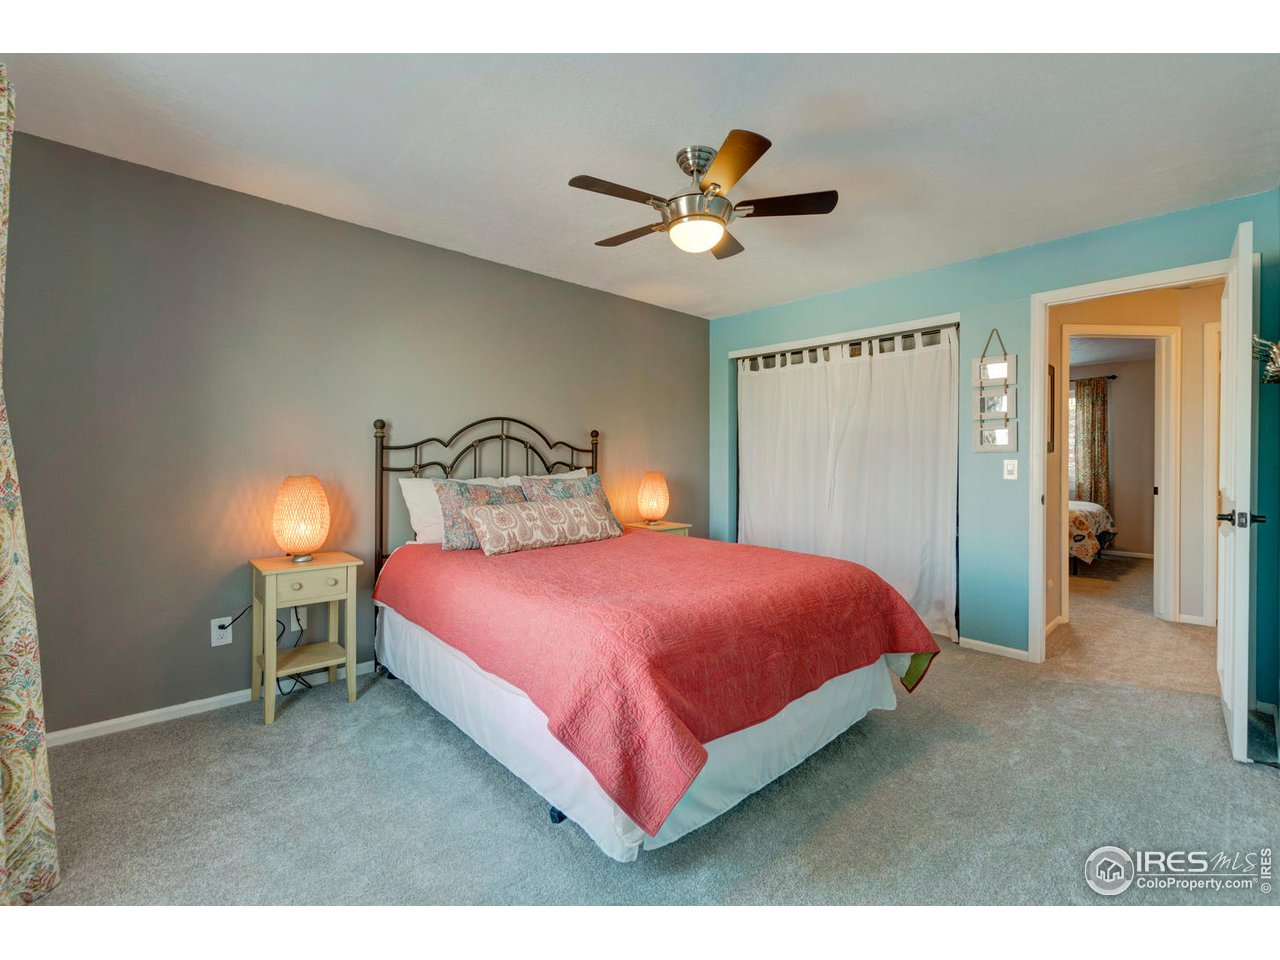 Master Bedroom - All bedrooms have ceiling fans